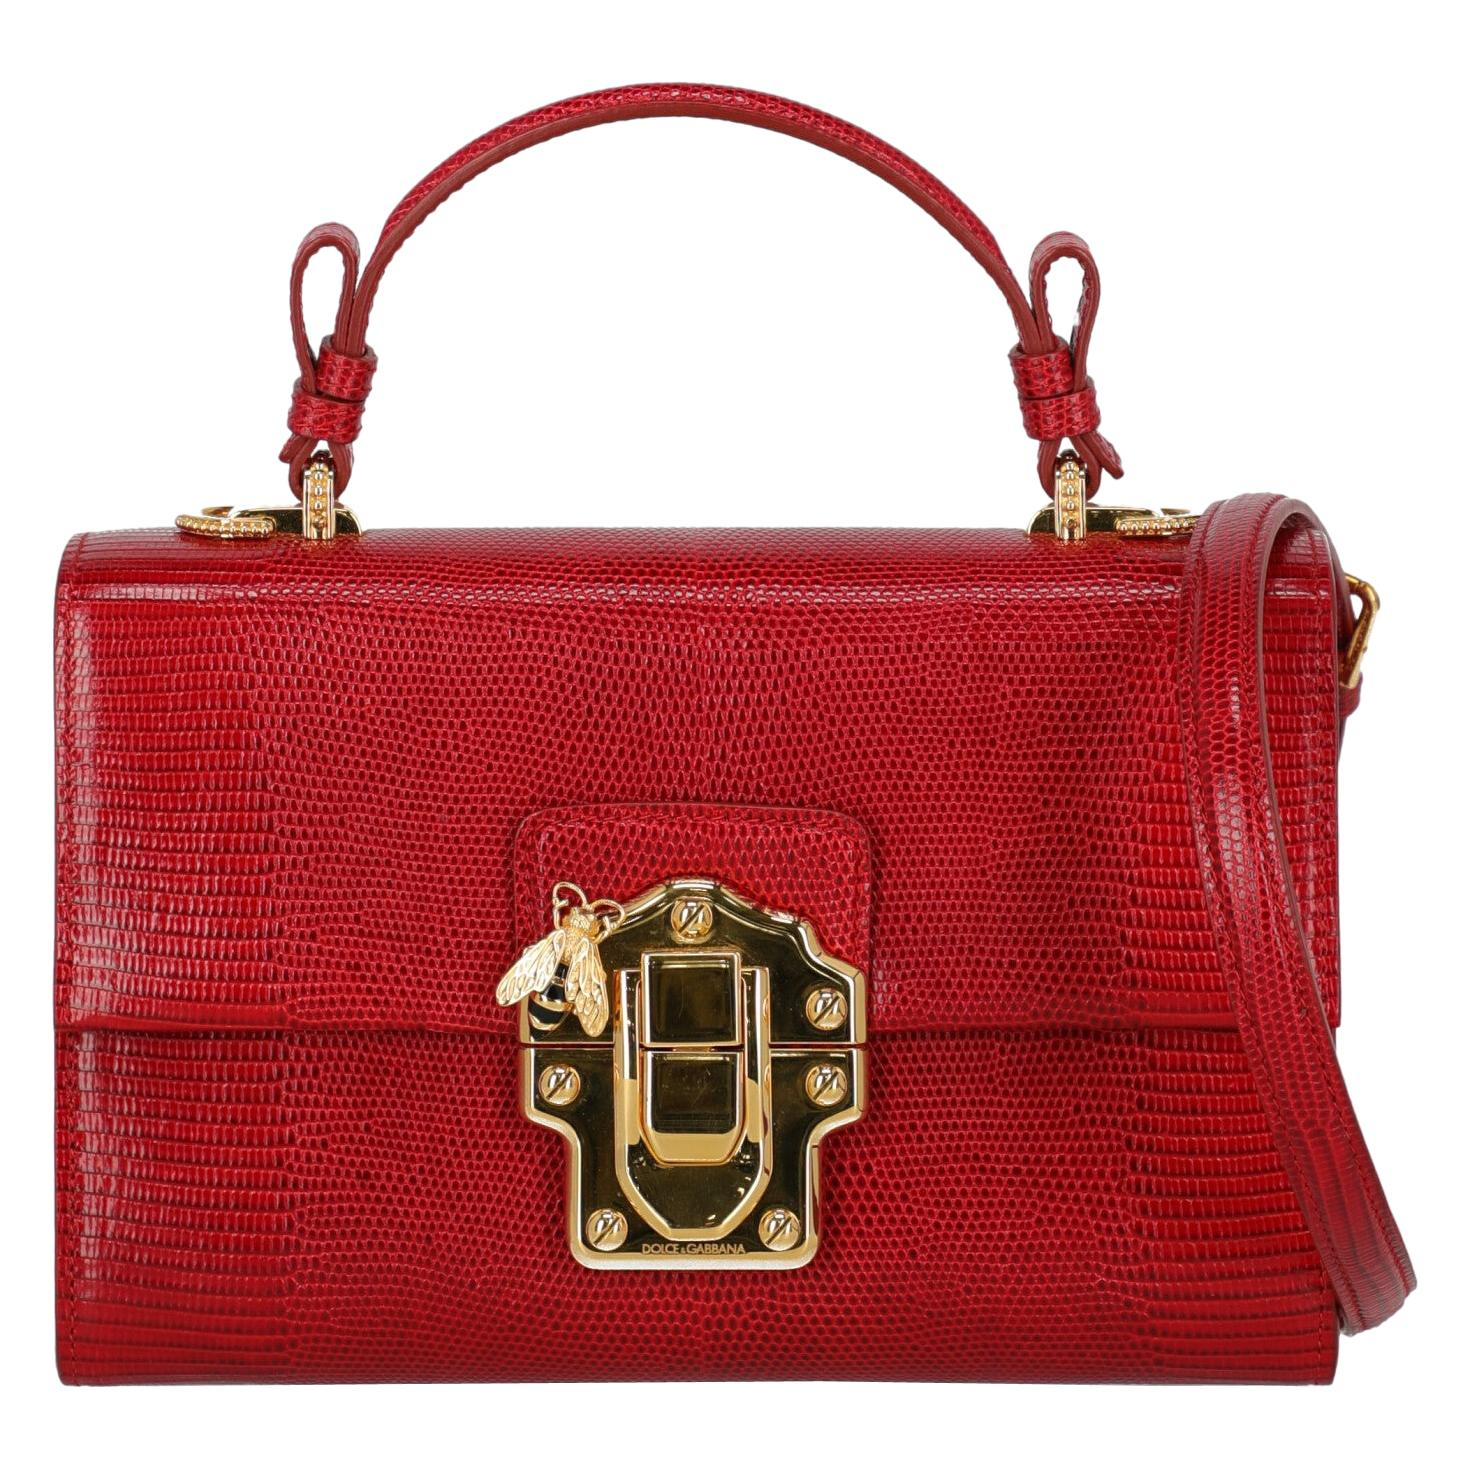 Dolce & Gabbana Woman Shoulder bag Lucia Red Leather